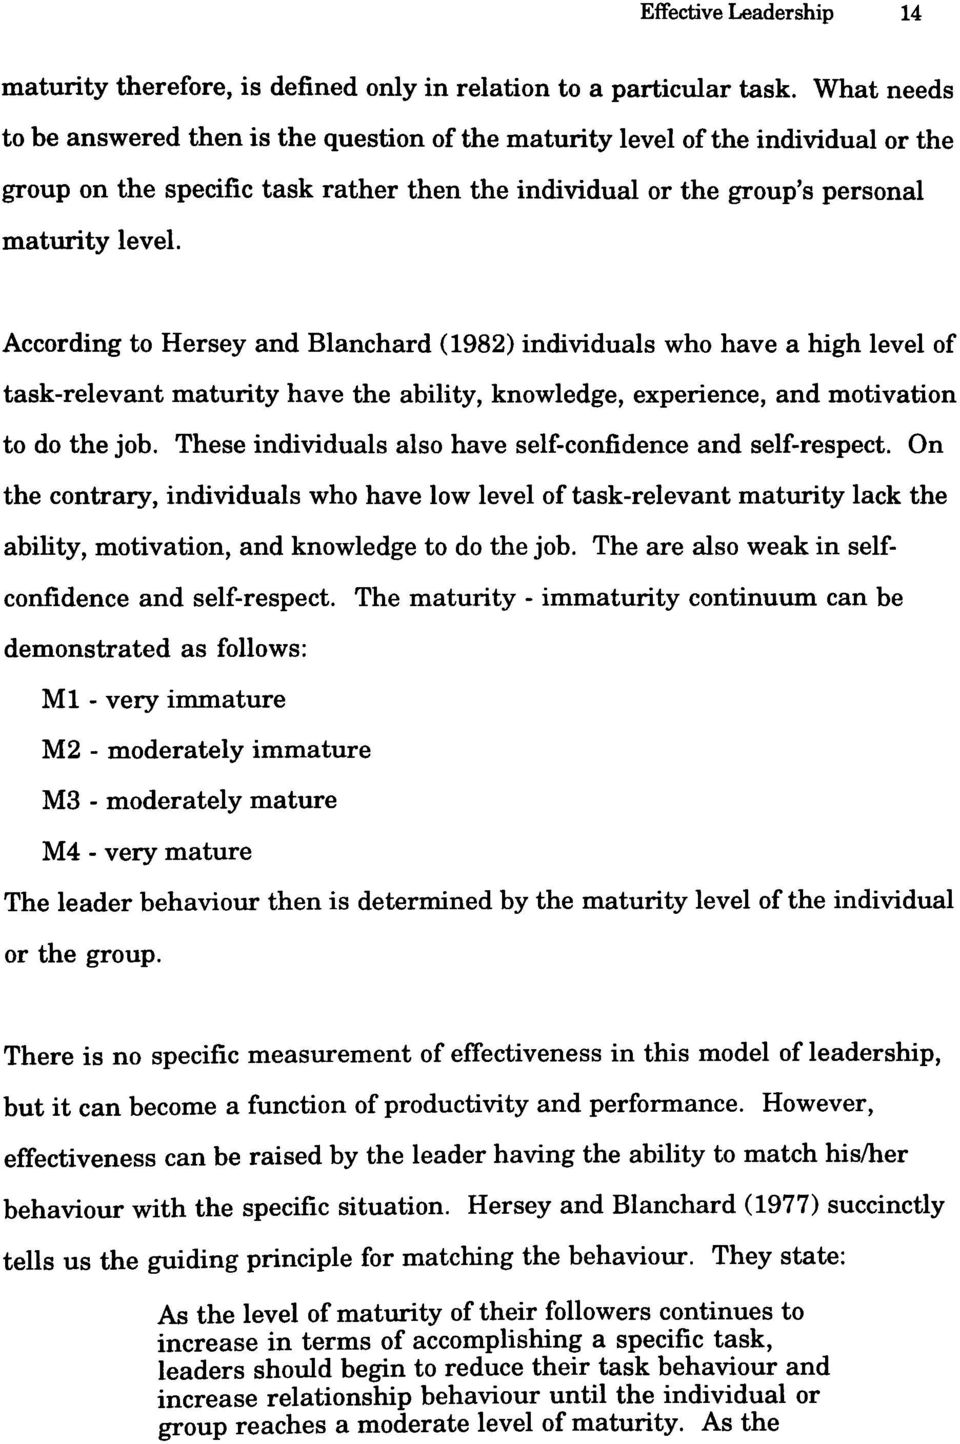 According to Hersey and Blanchard (1982) individuals who have a high level of task-relevant maturity have the ability, knowledge, experience, and motivation to do the job.